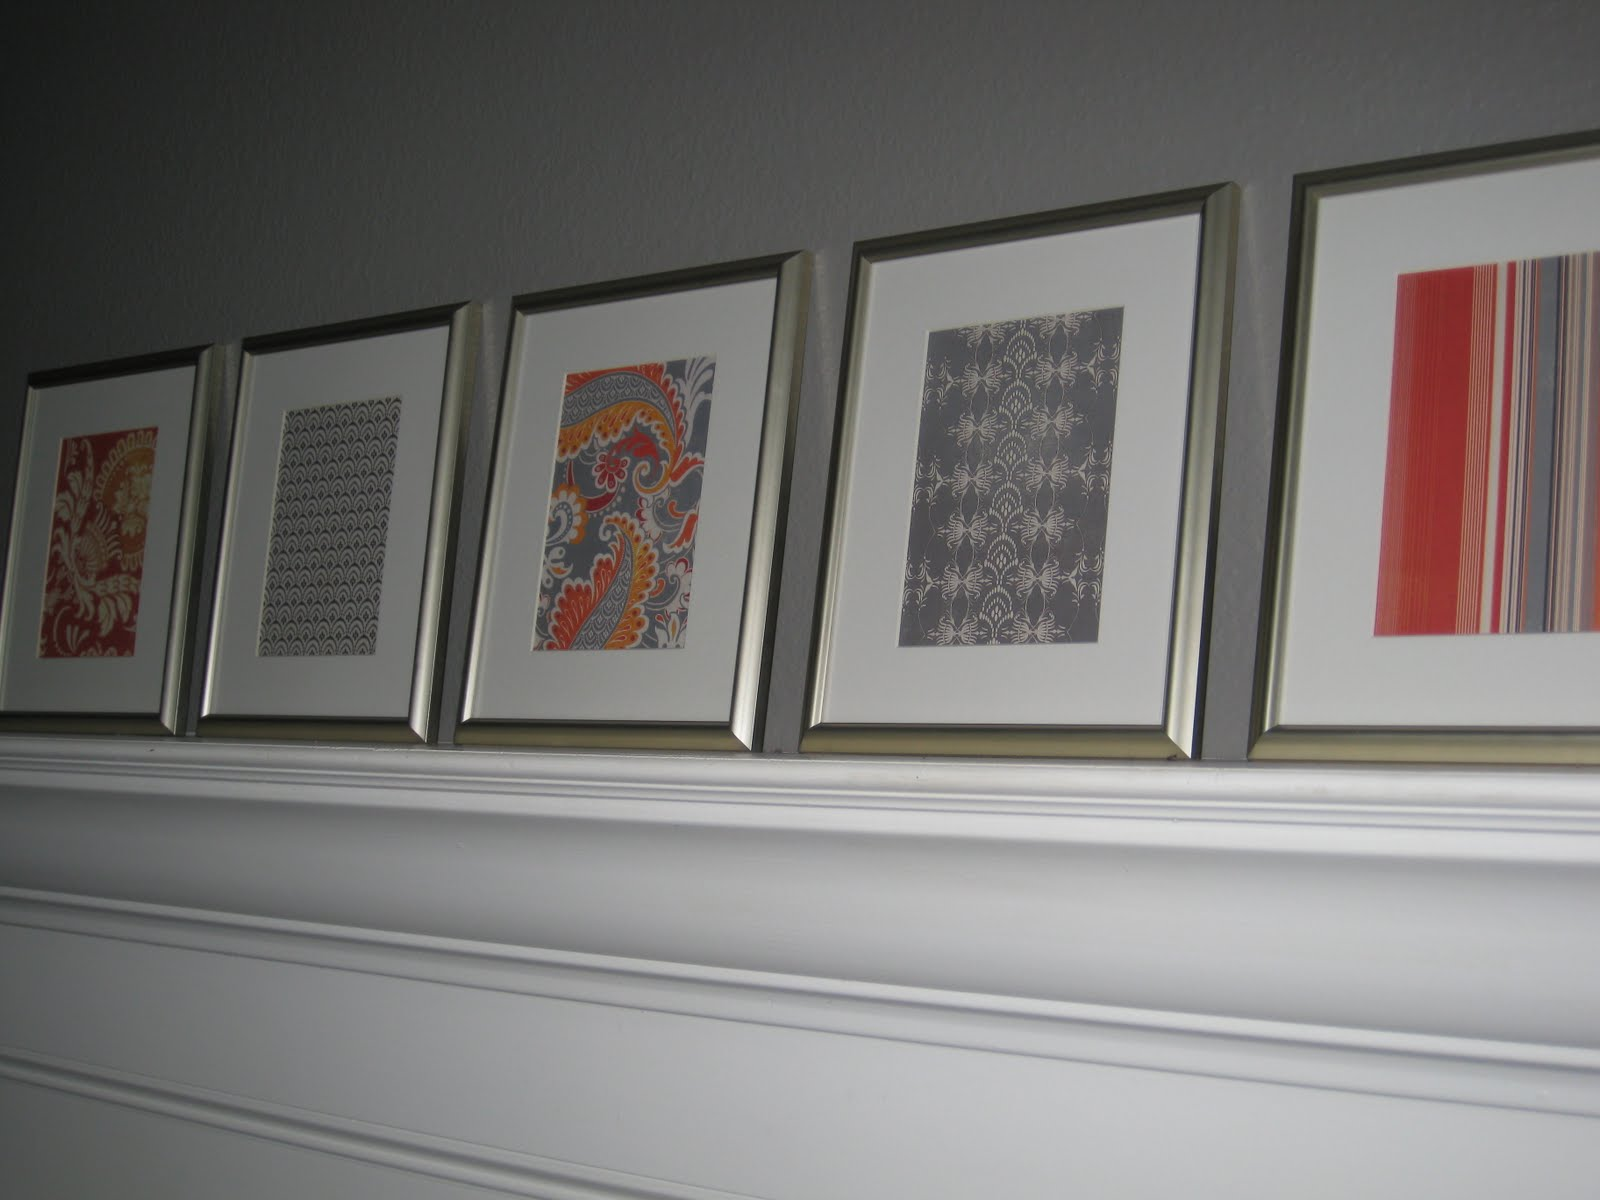 Frugal Life Project: Do-It-Yourself Wall Art